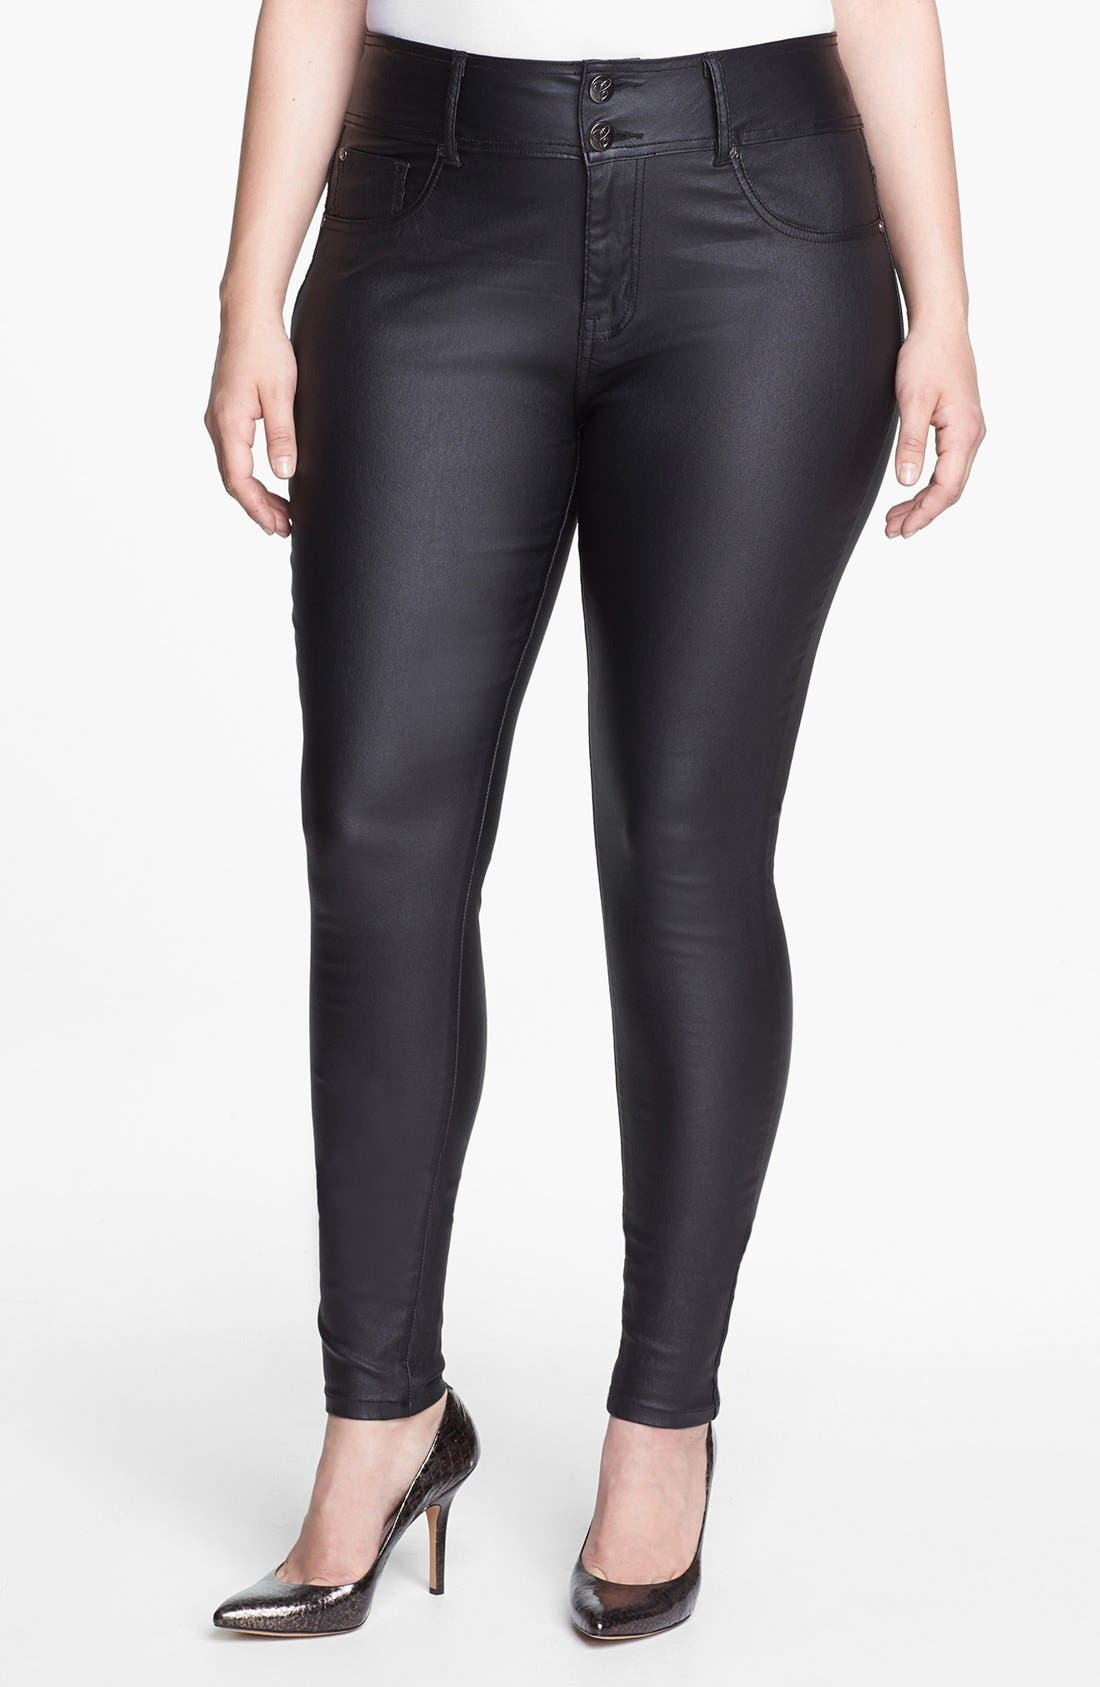 Wet Look Stretch Skinny Jeans,                             Main thumbnail 1, color,                             Black